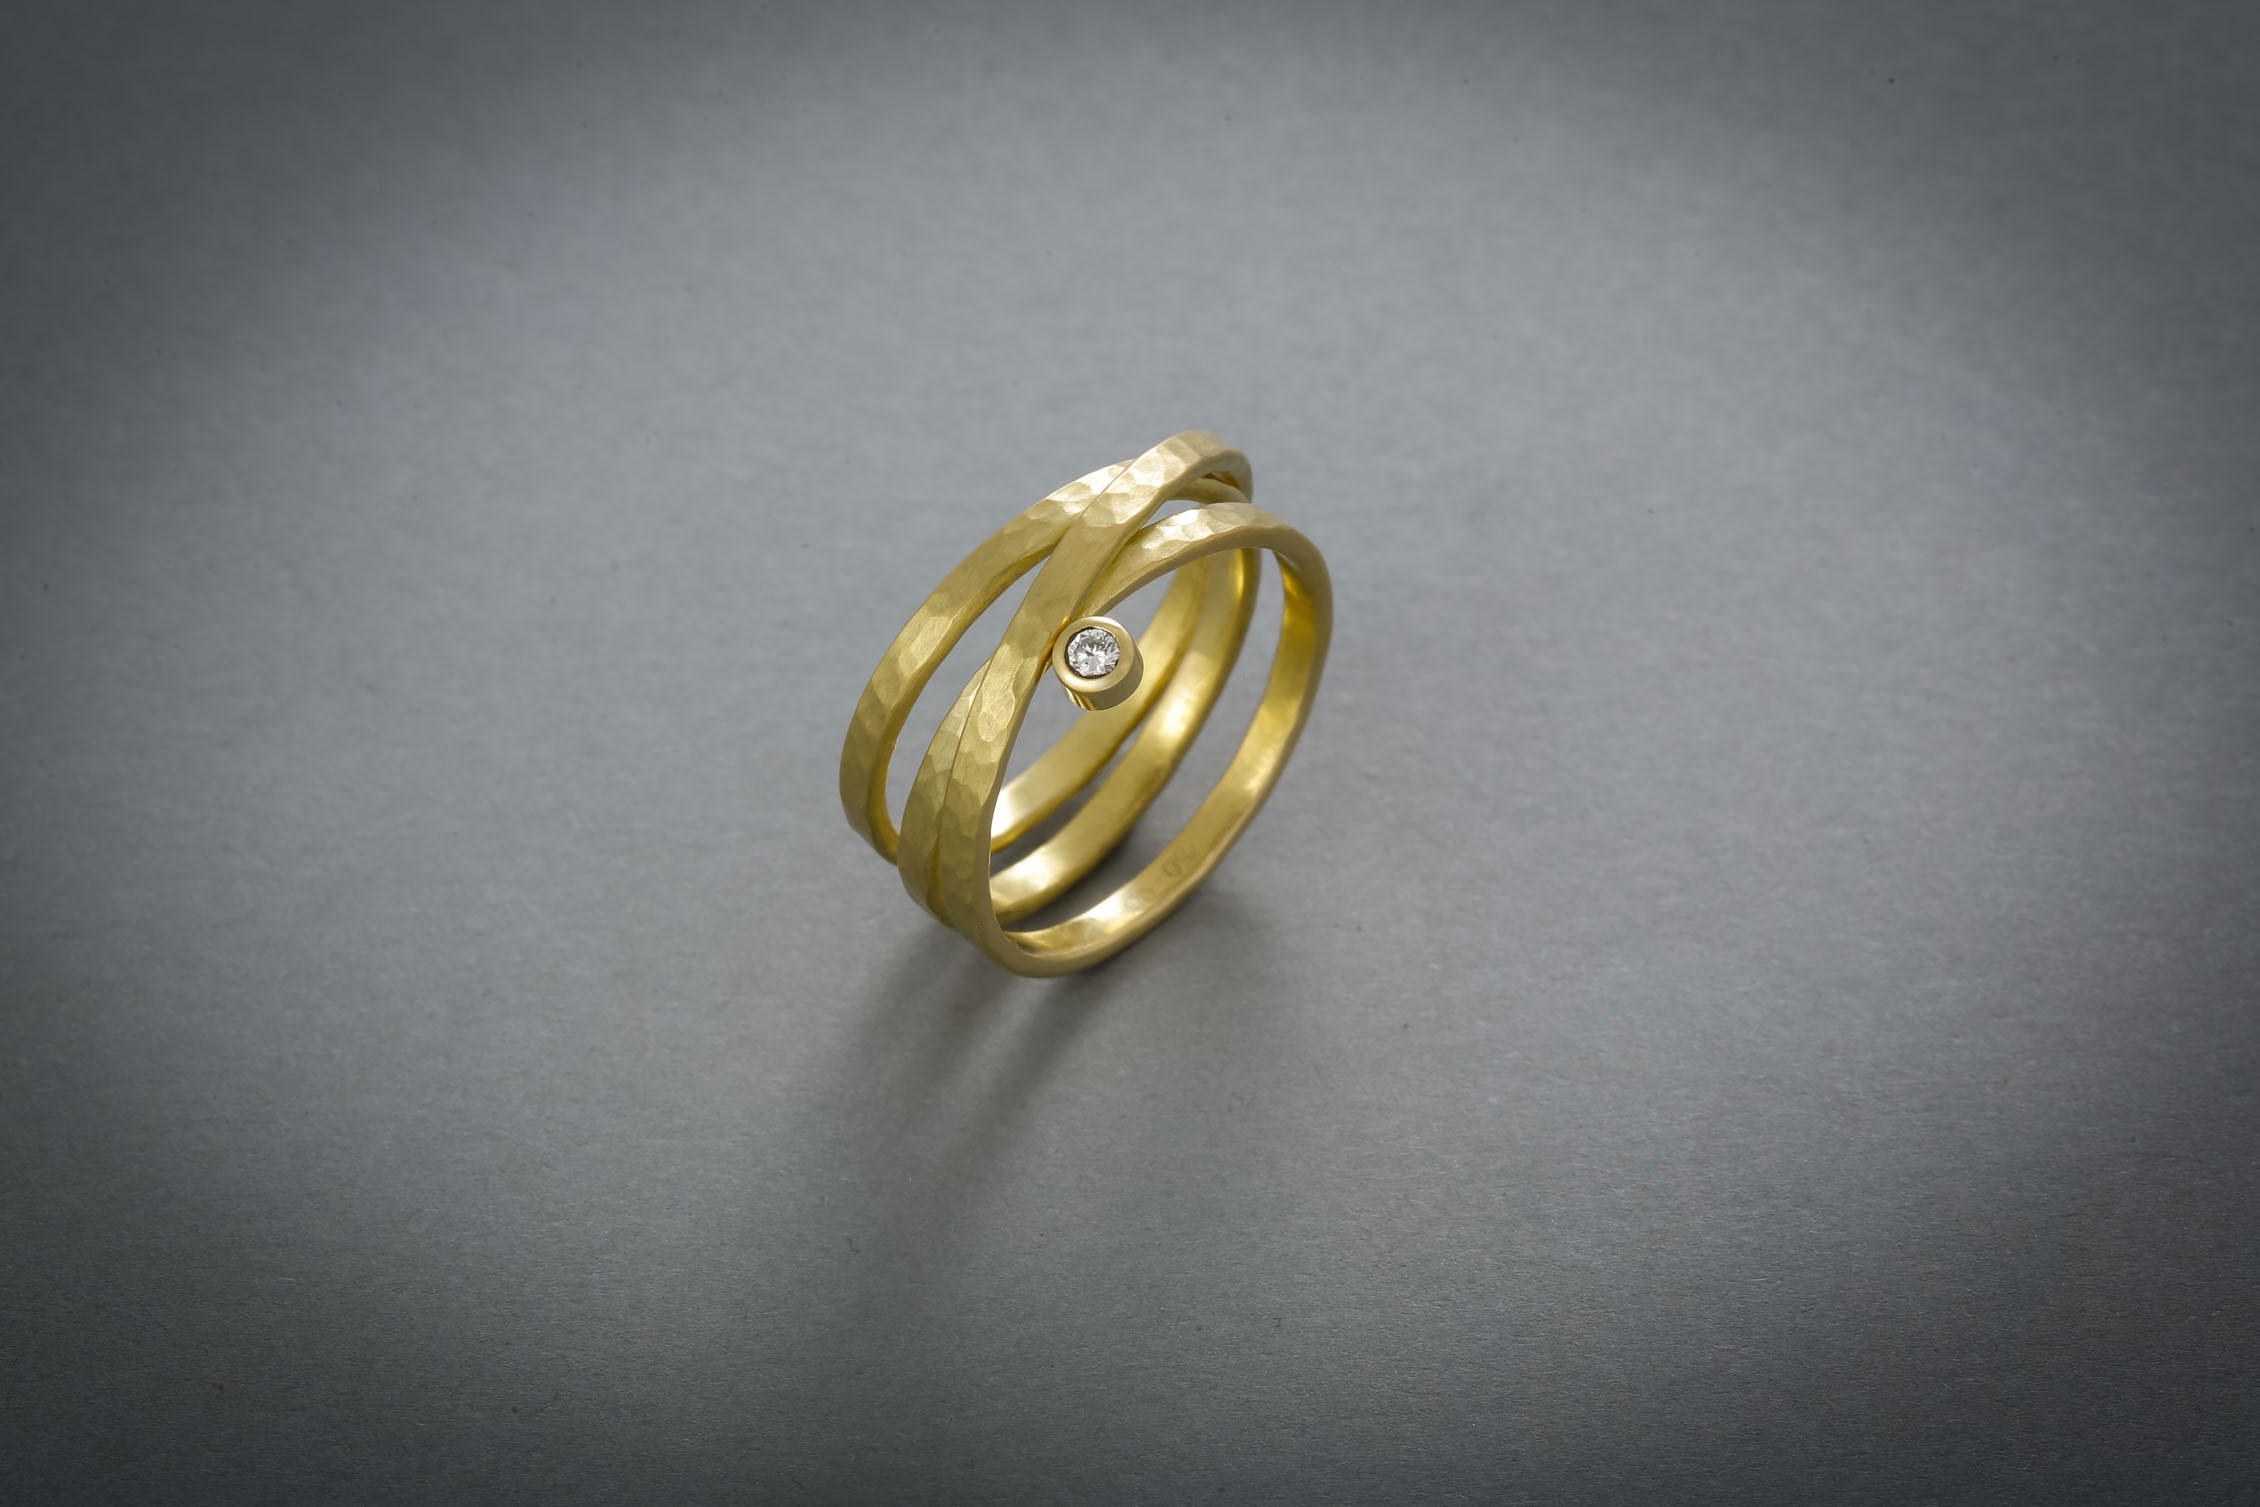 073 Goldring, Brillant ab € 928,-